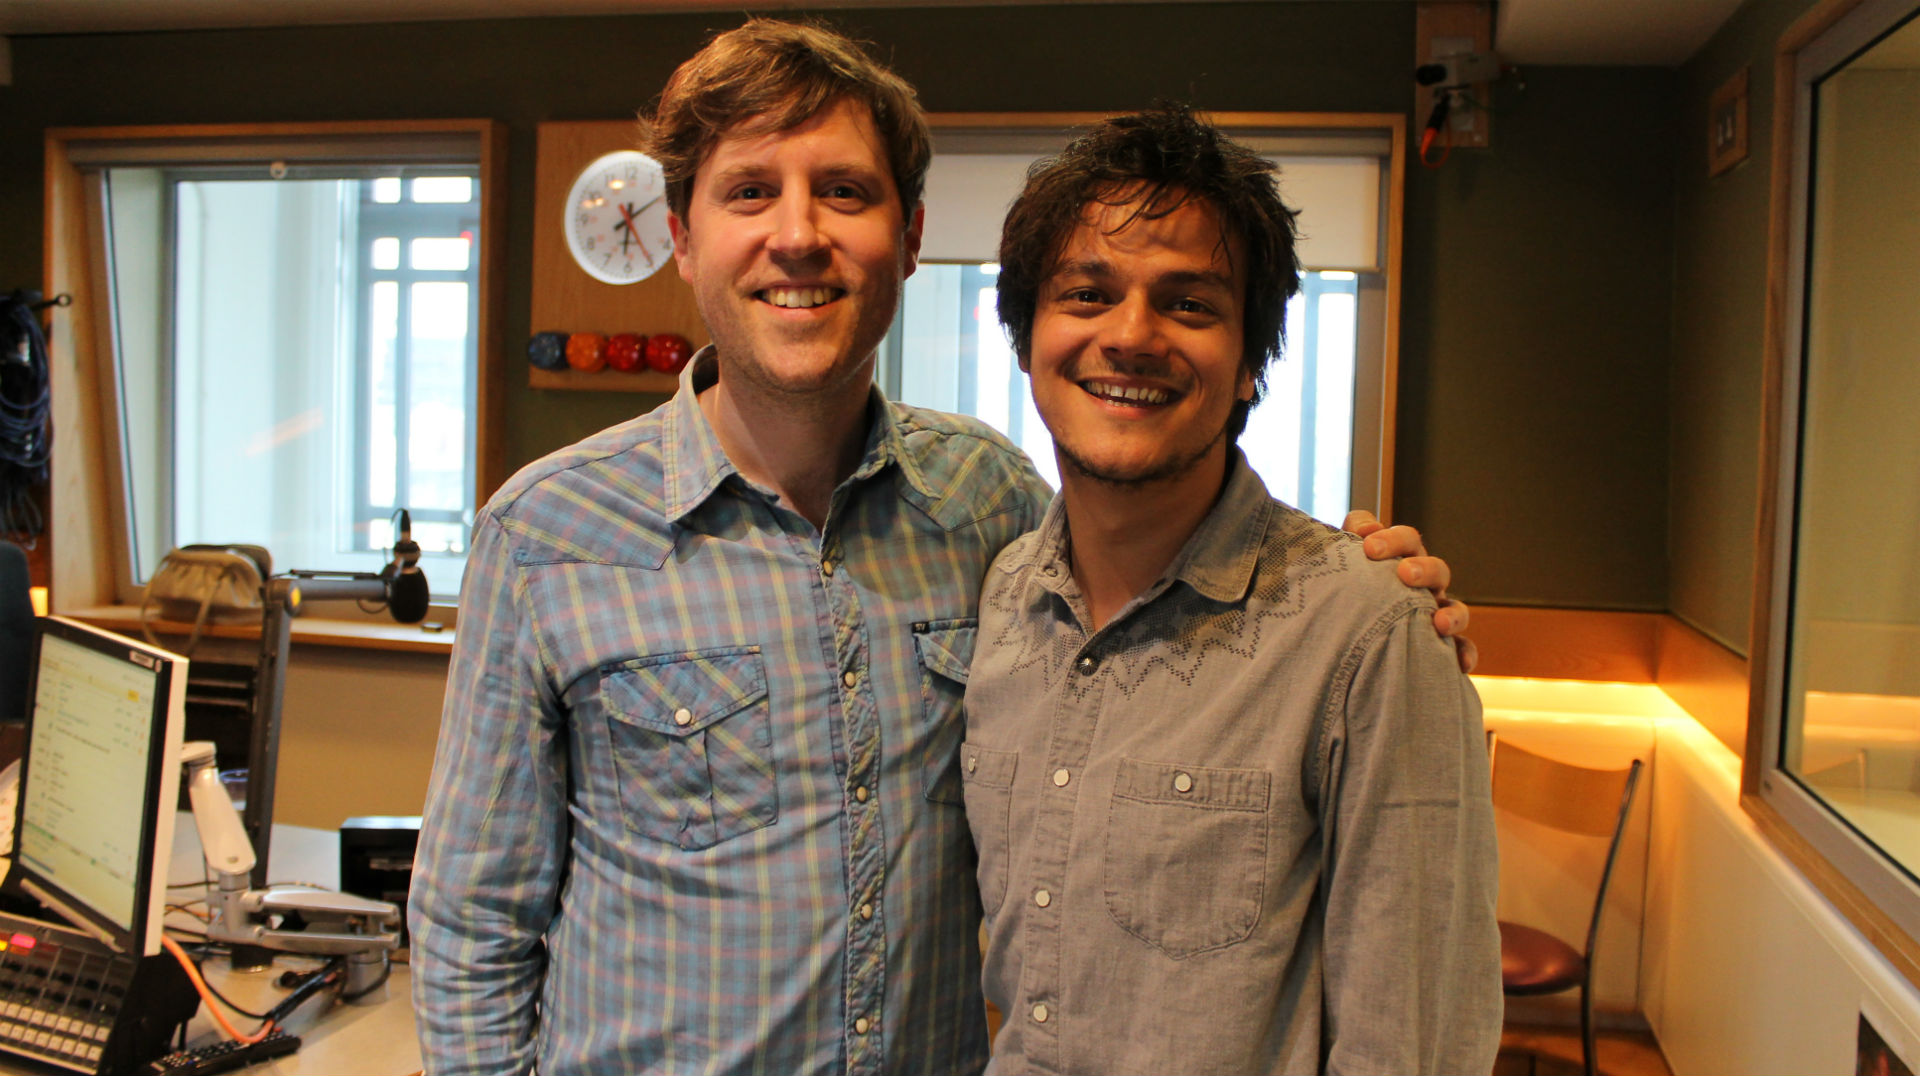 Popping in for a chat with Jamie Cullum for his BBC Radio 2 show